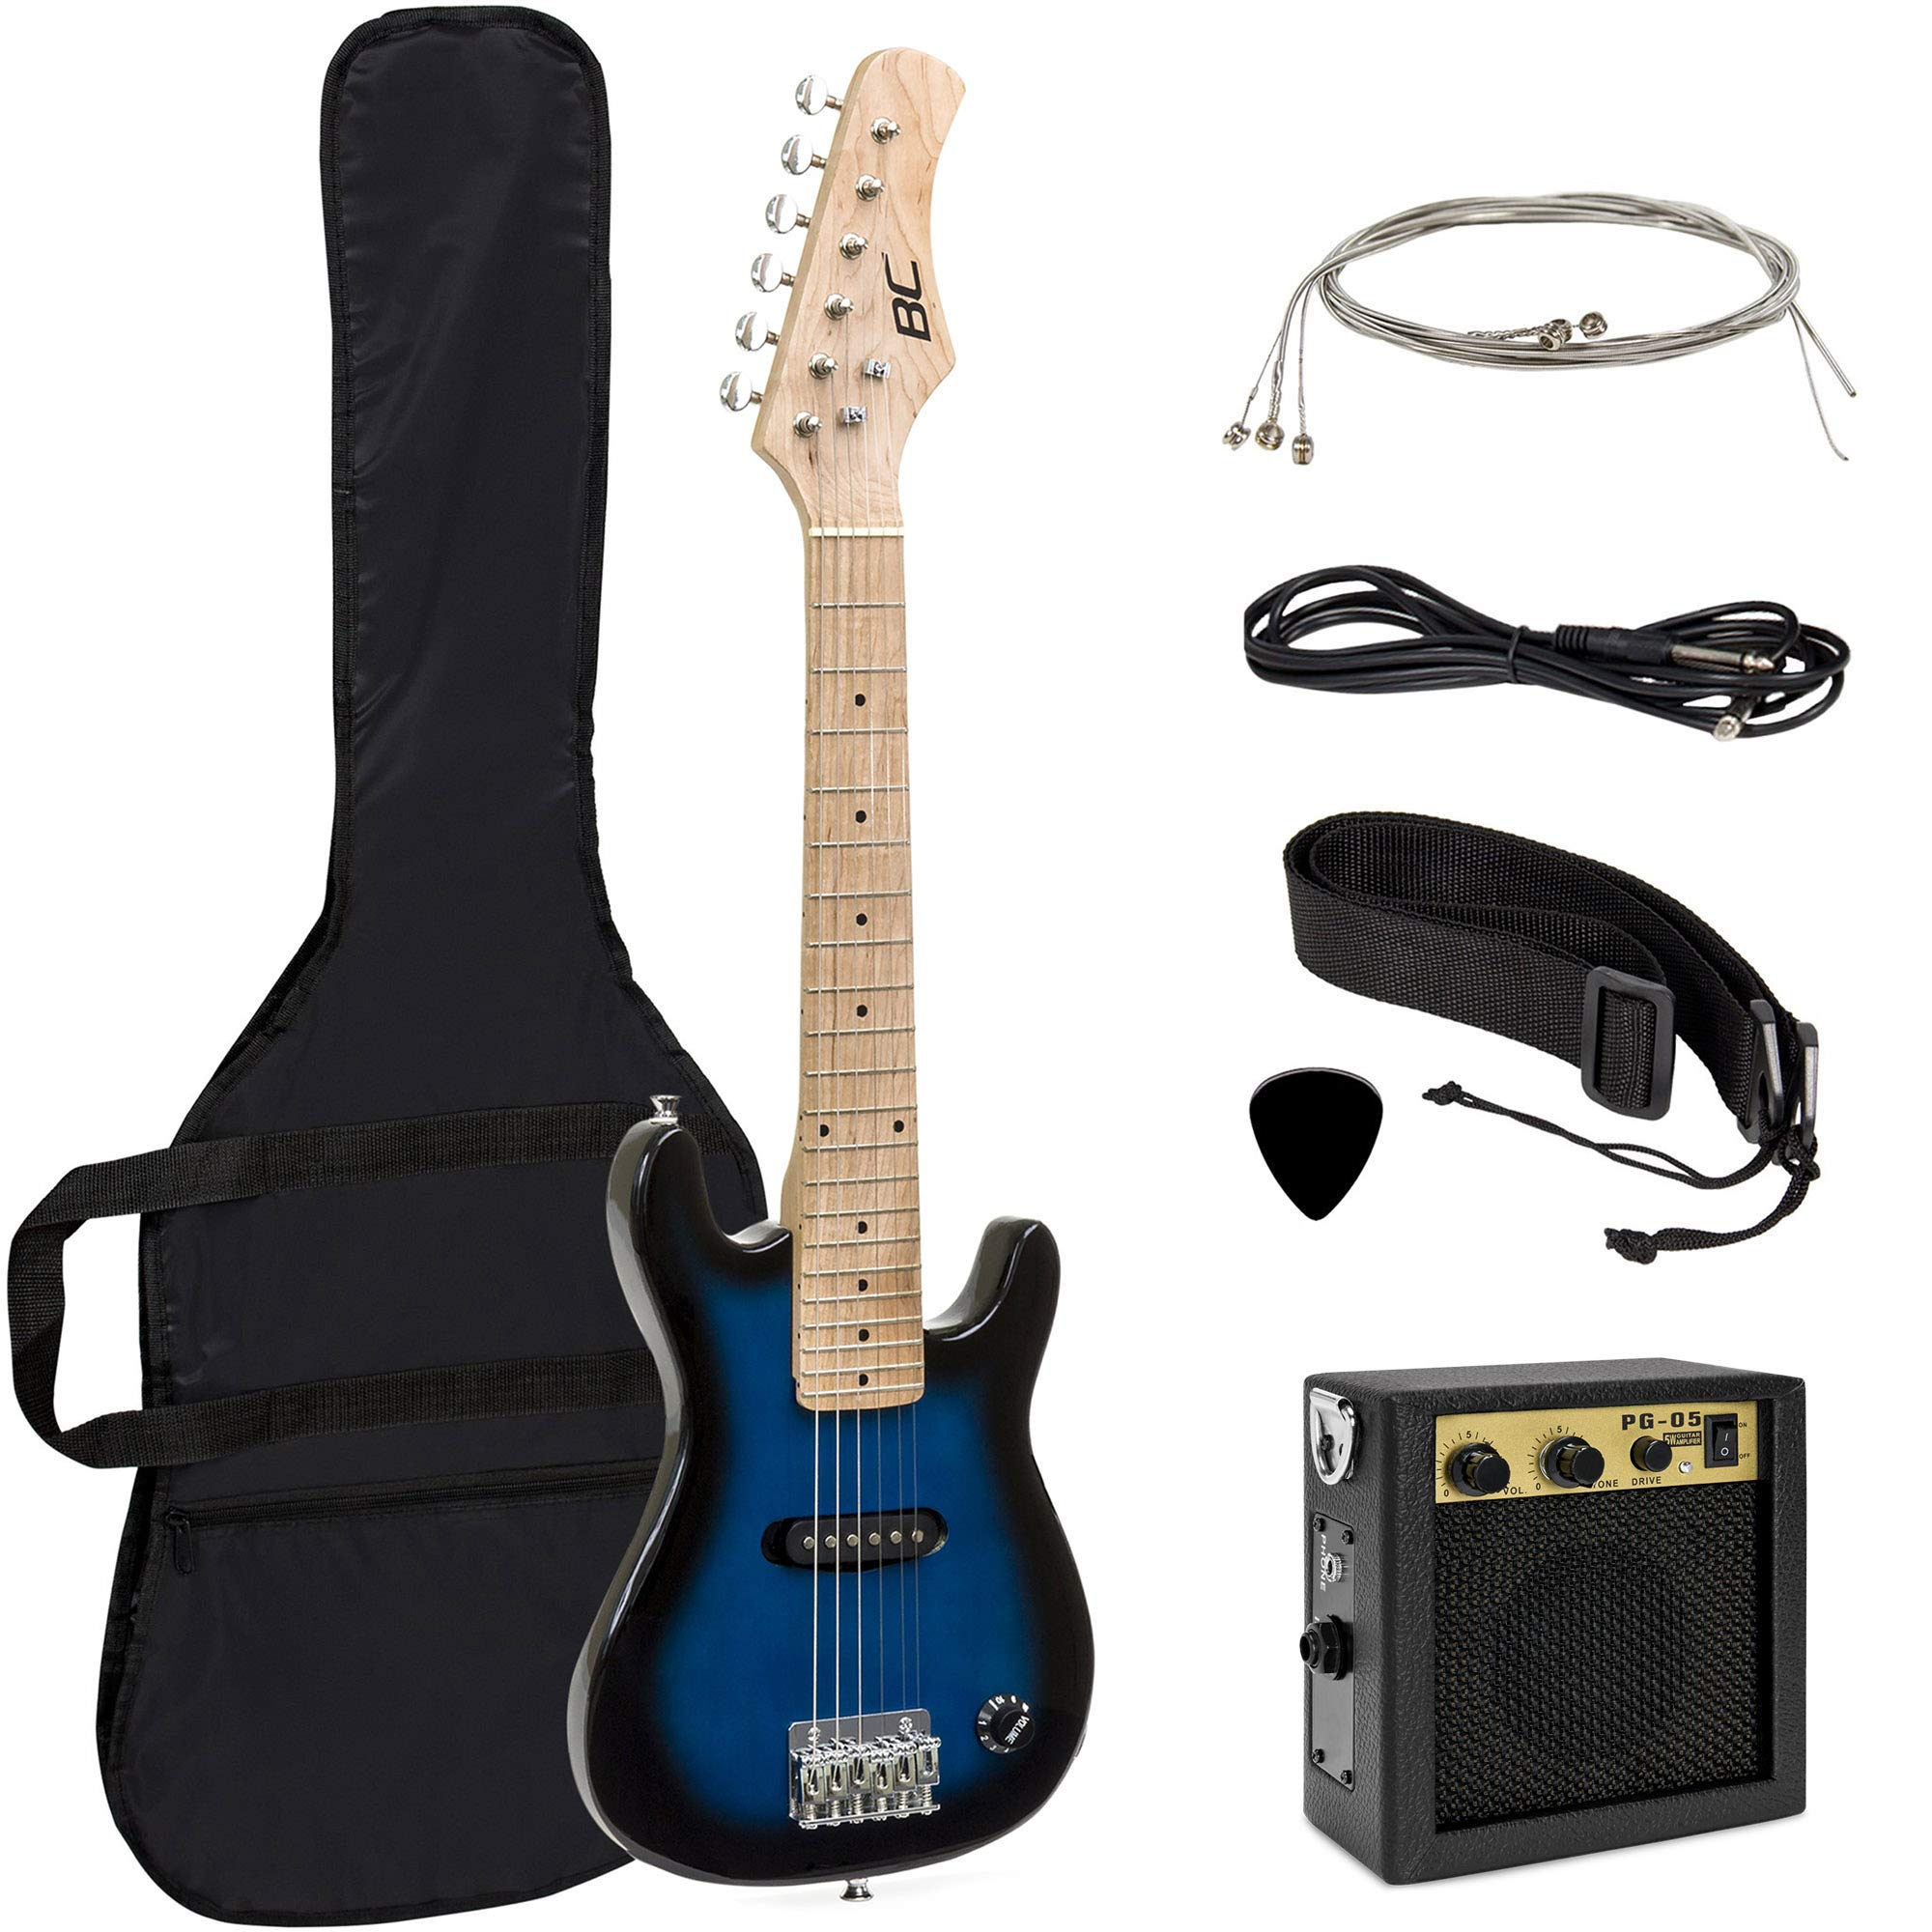 Best Choice Products Electric Guitar Kids 30'' Blue Guitar W/ Amp, Case, Strap (Blue) by Best Choice Products